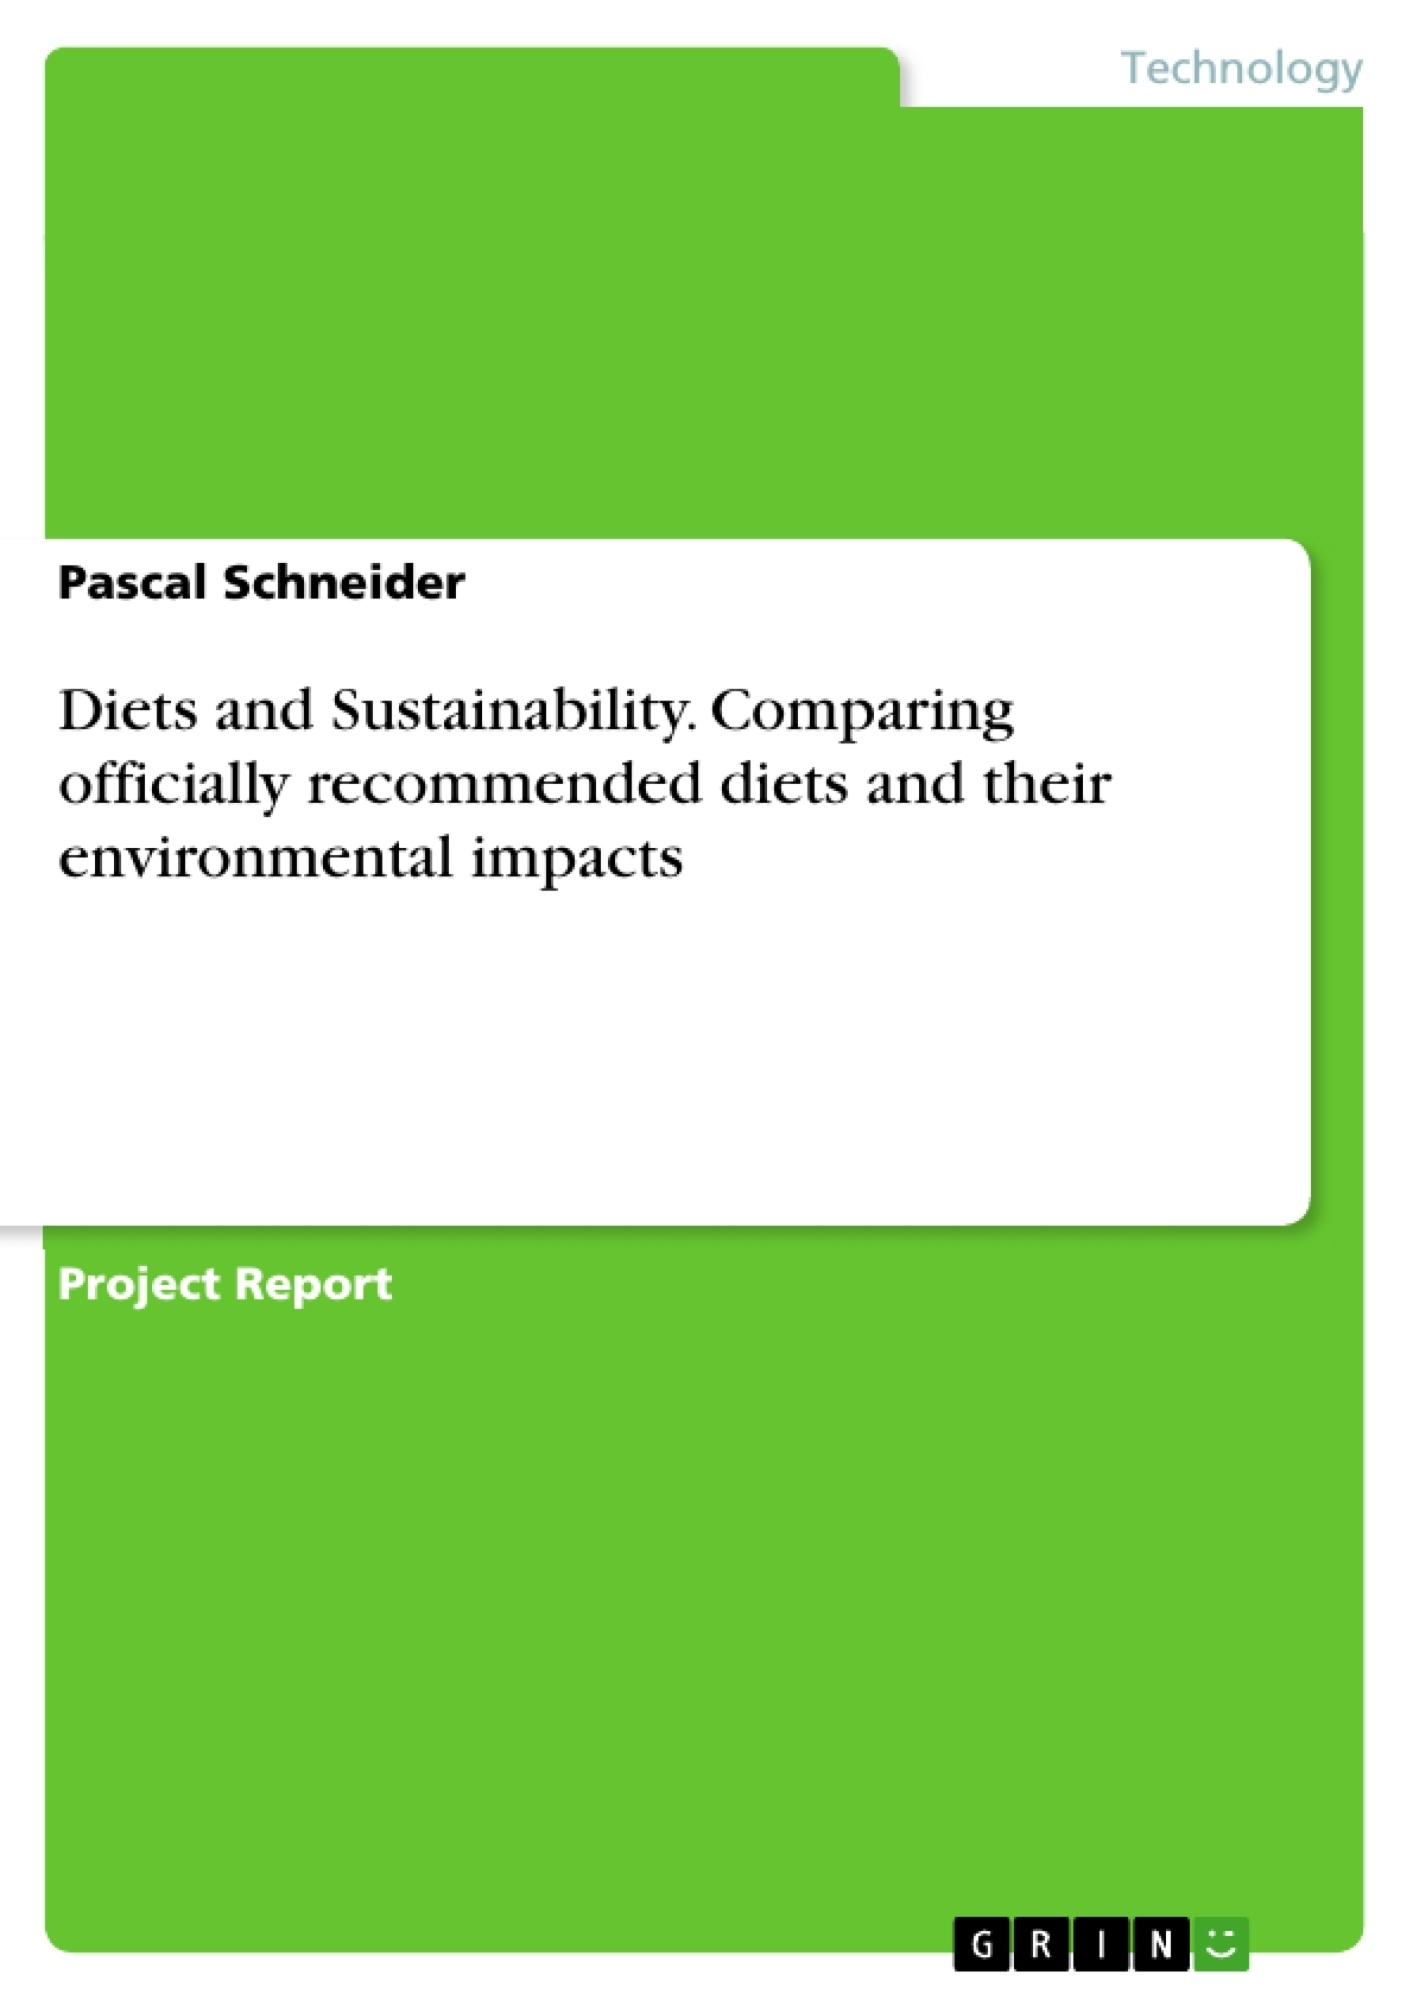 Title: Diets and Sustainability. Comparing officially recommended diets and their environmental impacts